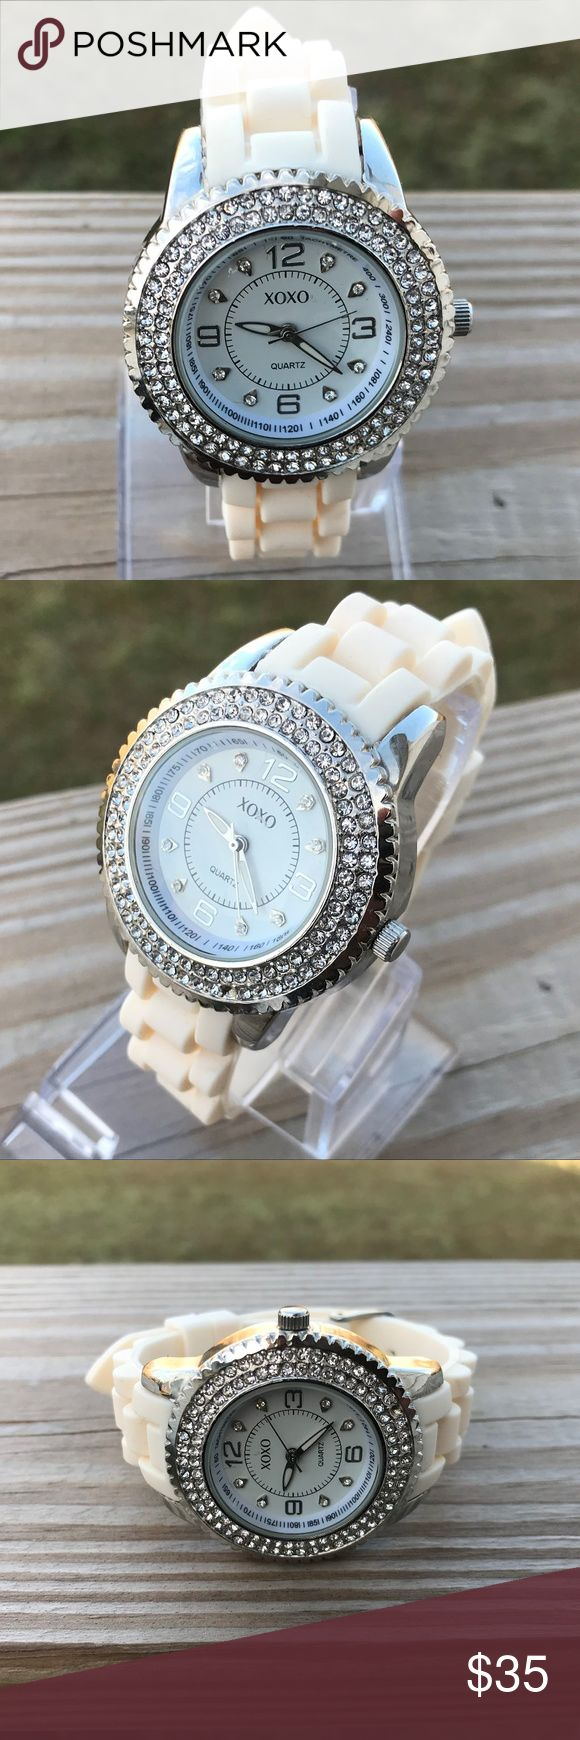 XOXO Women's Watch White Silicon Rubber Band Silve XOXO Women's Watch White Silicon Rubber Band Silver Case Wrist Watch Japan Movt  Brand: XOXO  Color: White + Silver  Size: belt ( adjustable )  Japan movement Stainless Steel Back  New without tags, never used. XOXO Accessories Watches